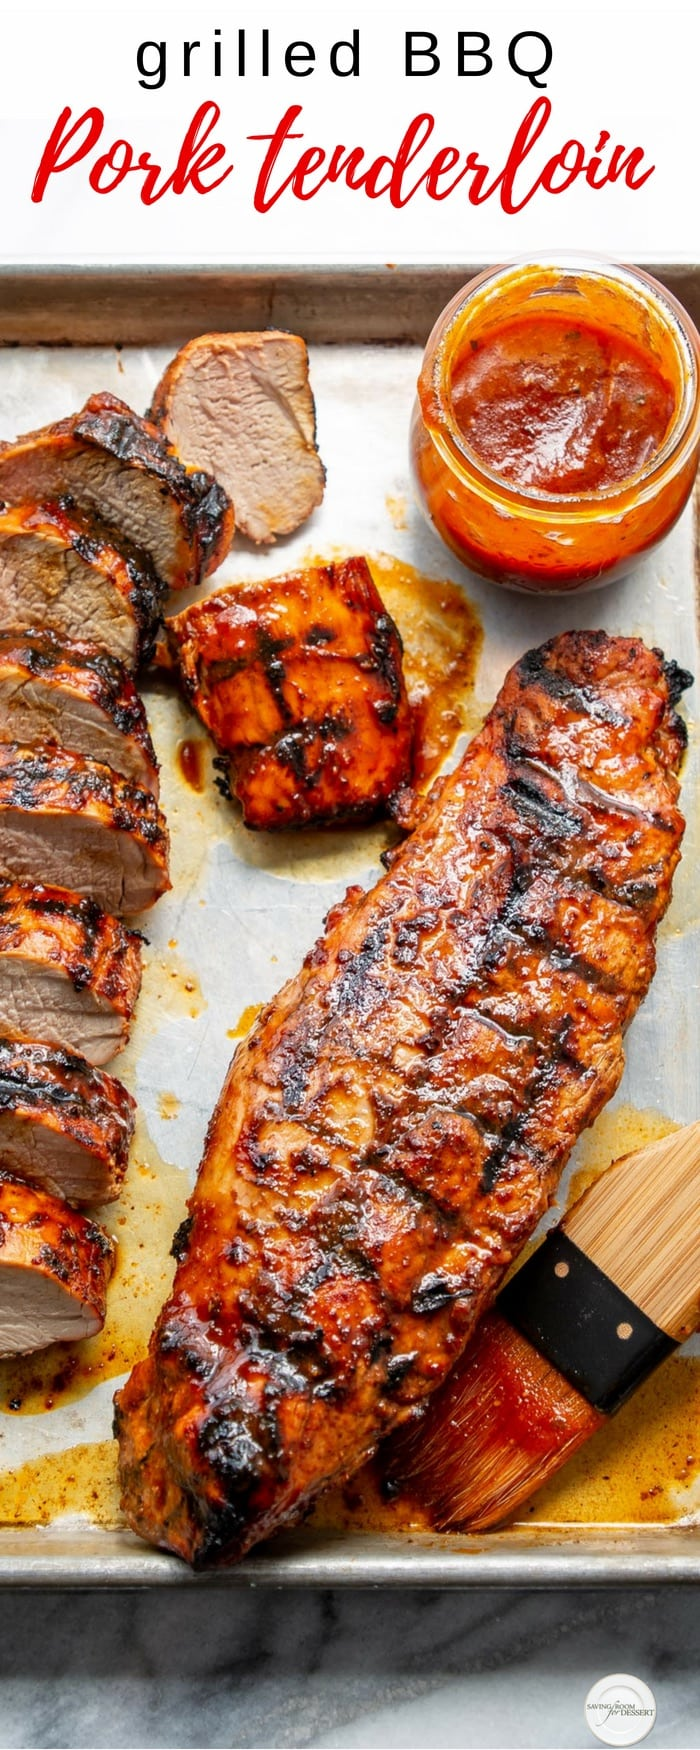 Grilled BBQ Pork Tenderloin - marinated in a our homemade sweet and spicy Honey BBQ Sauce then grilled to juicy perfection, this simple main course is a summer staple #easydinner #easygrilled #grilled #grilling #pork #porktenderloin #tenderloin #BBQpork #BBQtenderloin #barbecue